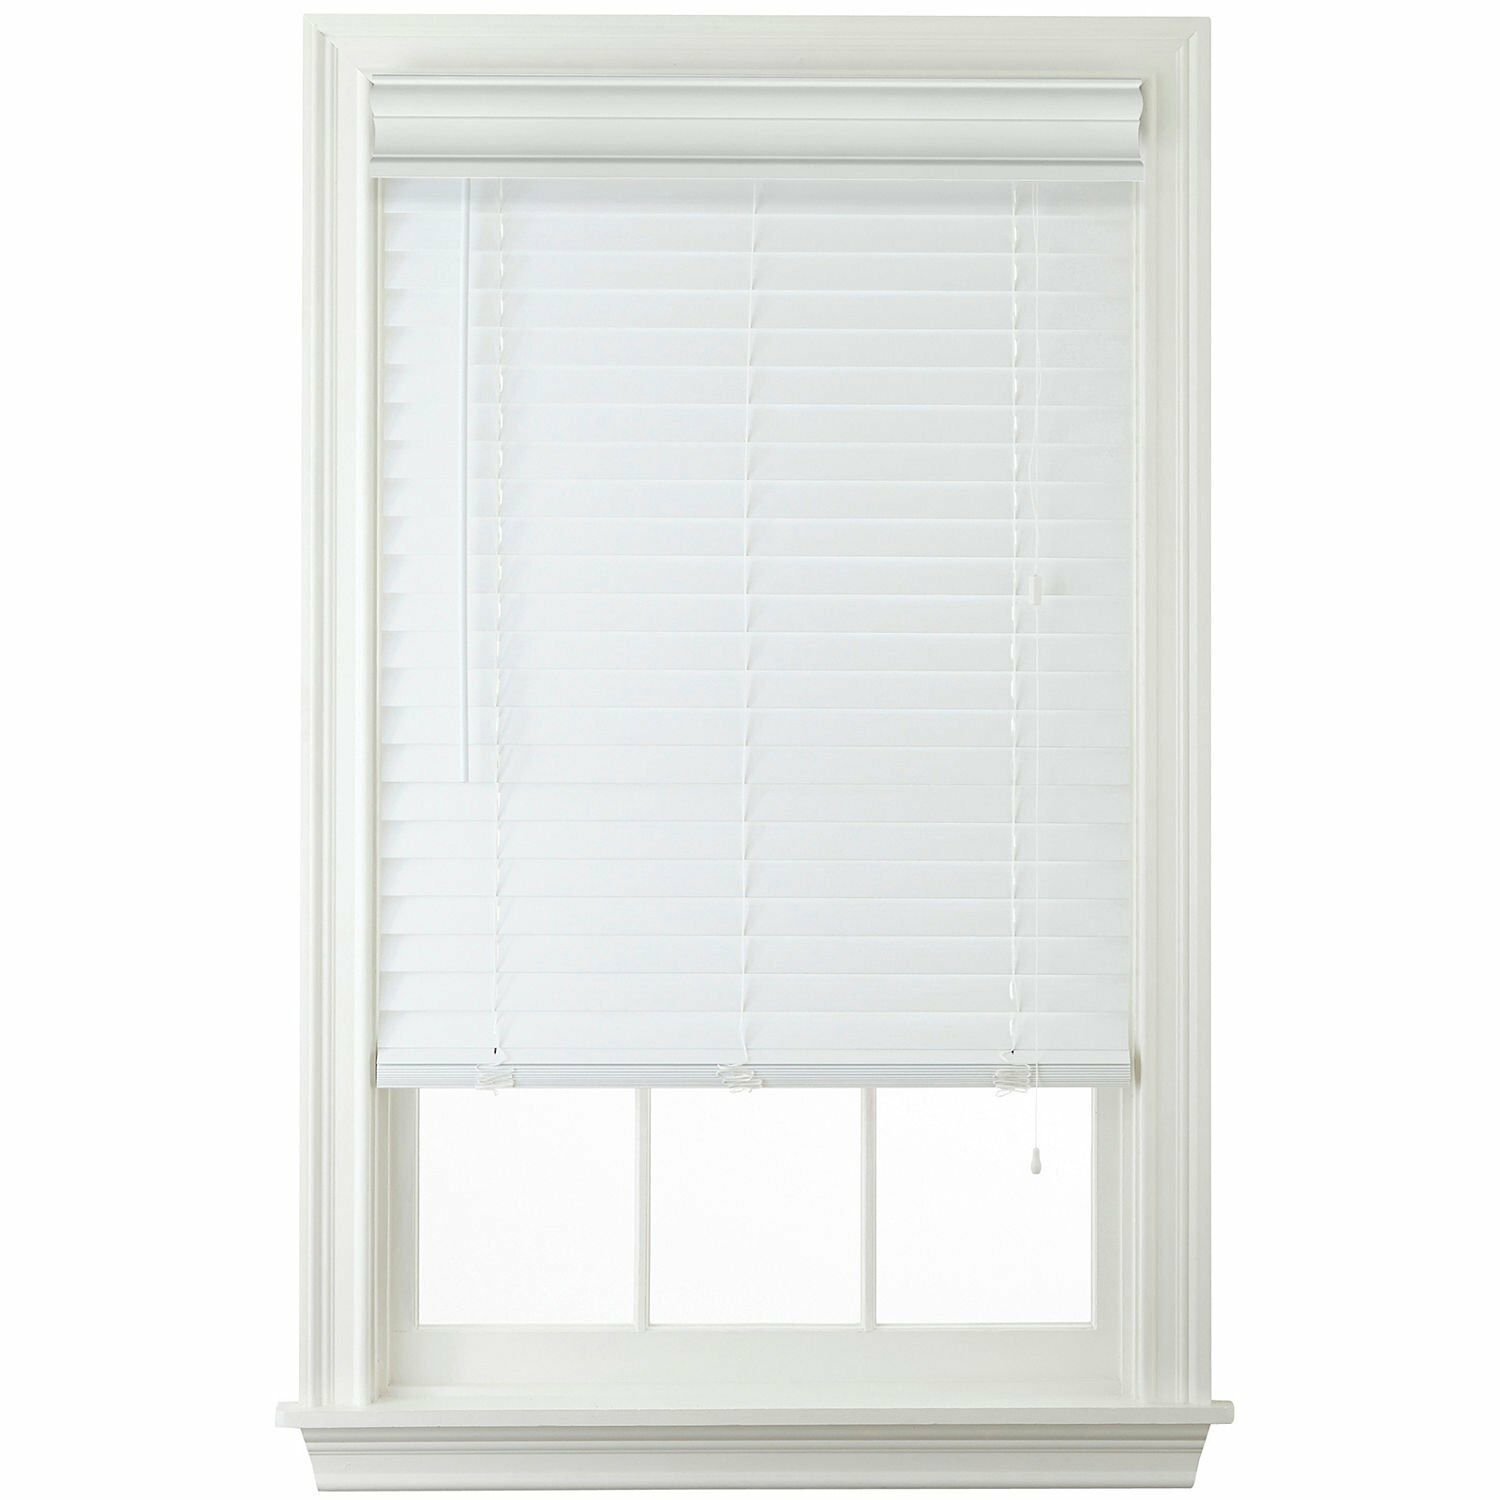 "2"" Faux Wood Horizontal Blinds - White"